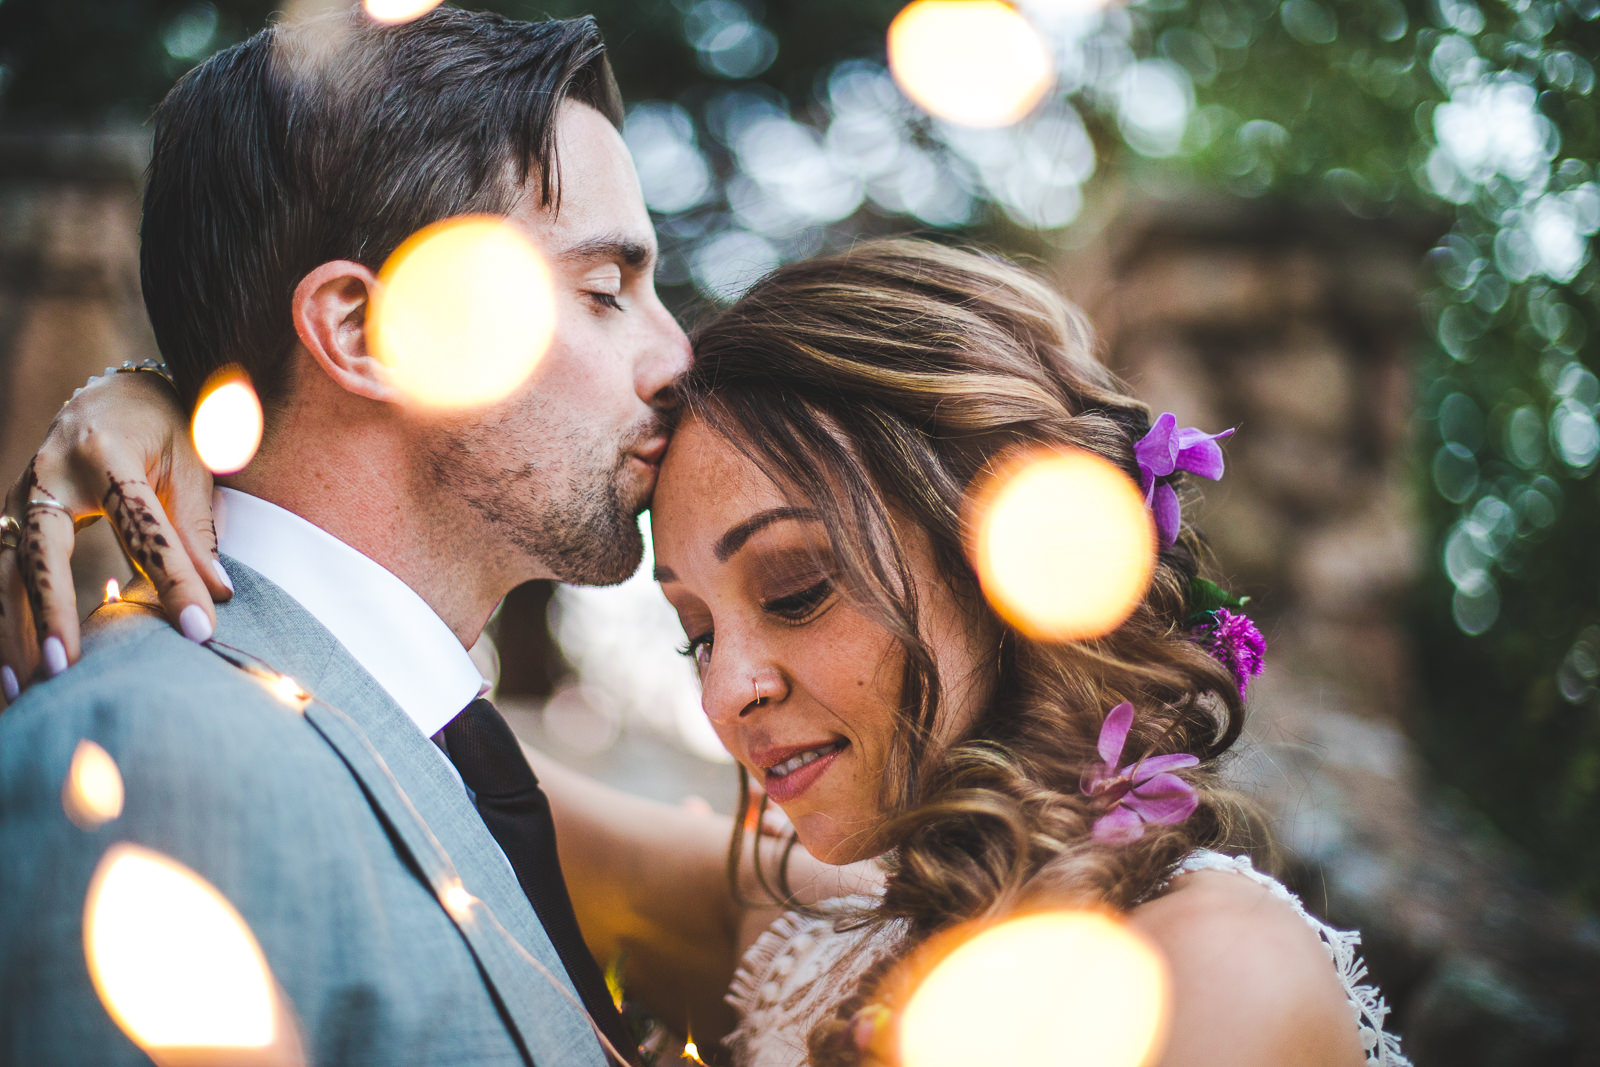 Closeup of man kissing wife's forehead with lights surrounding them